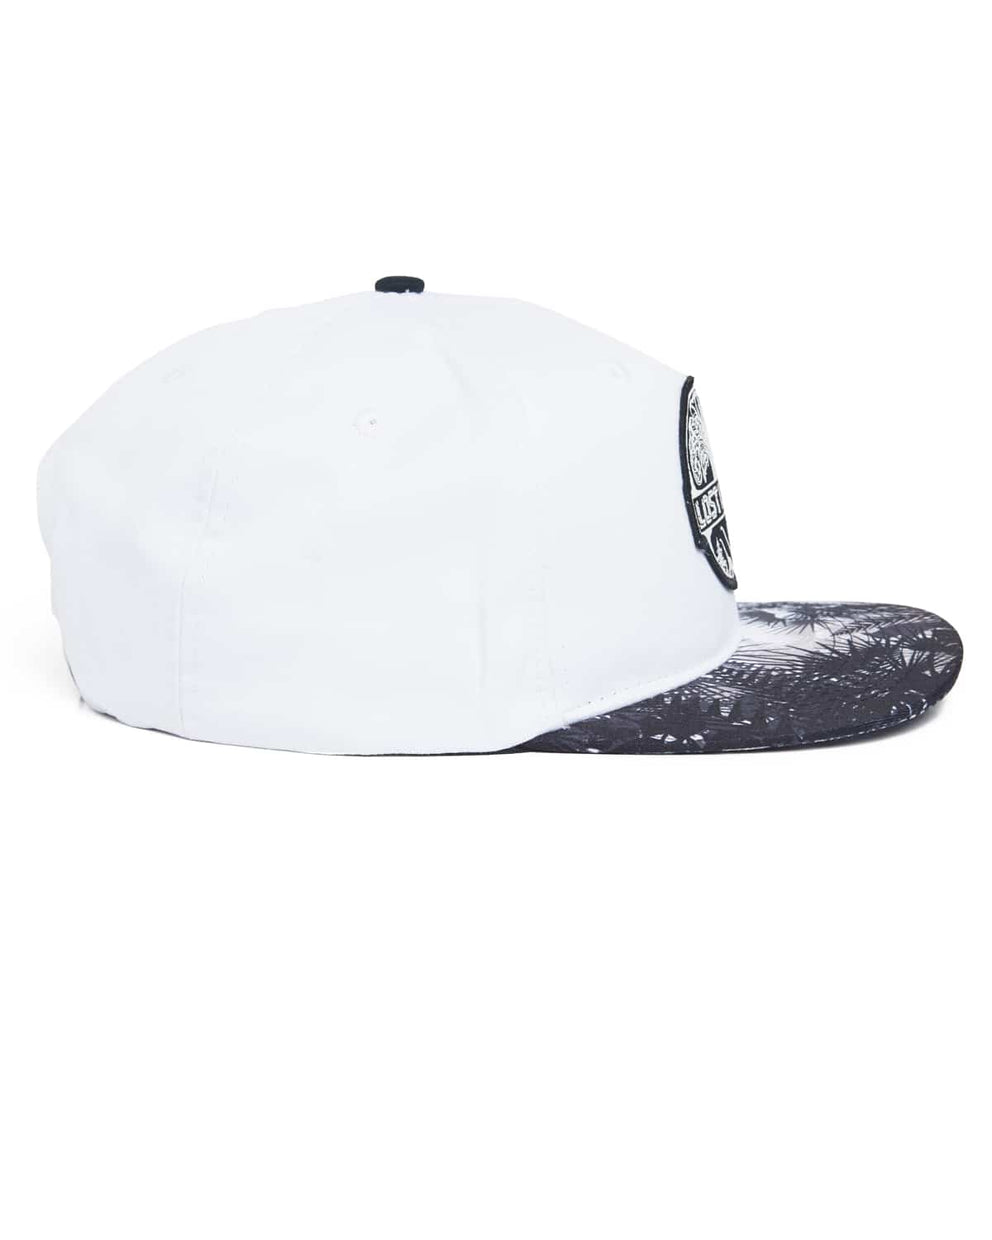 Lost Lands 'Tree of Life' Snapback (White/Black)